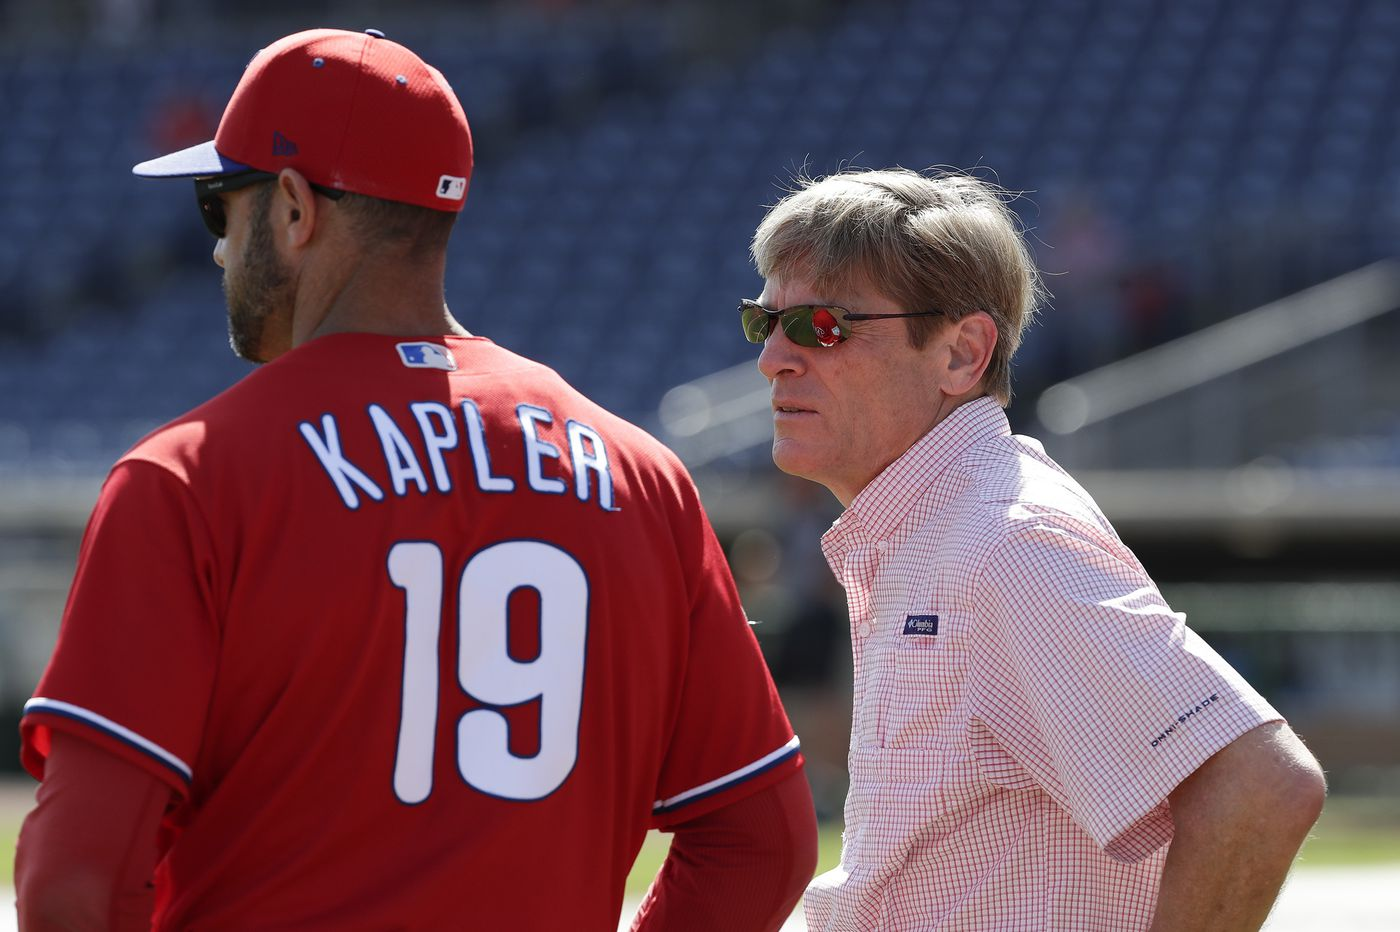 Gabe Kapler wasn't people's choice to lead Phillies, so owner John Middleton must not allow public opinion to